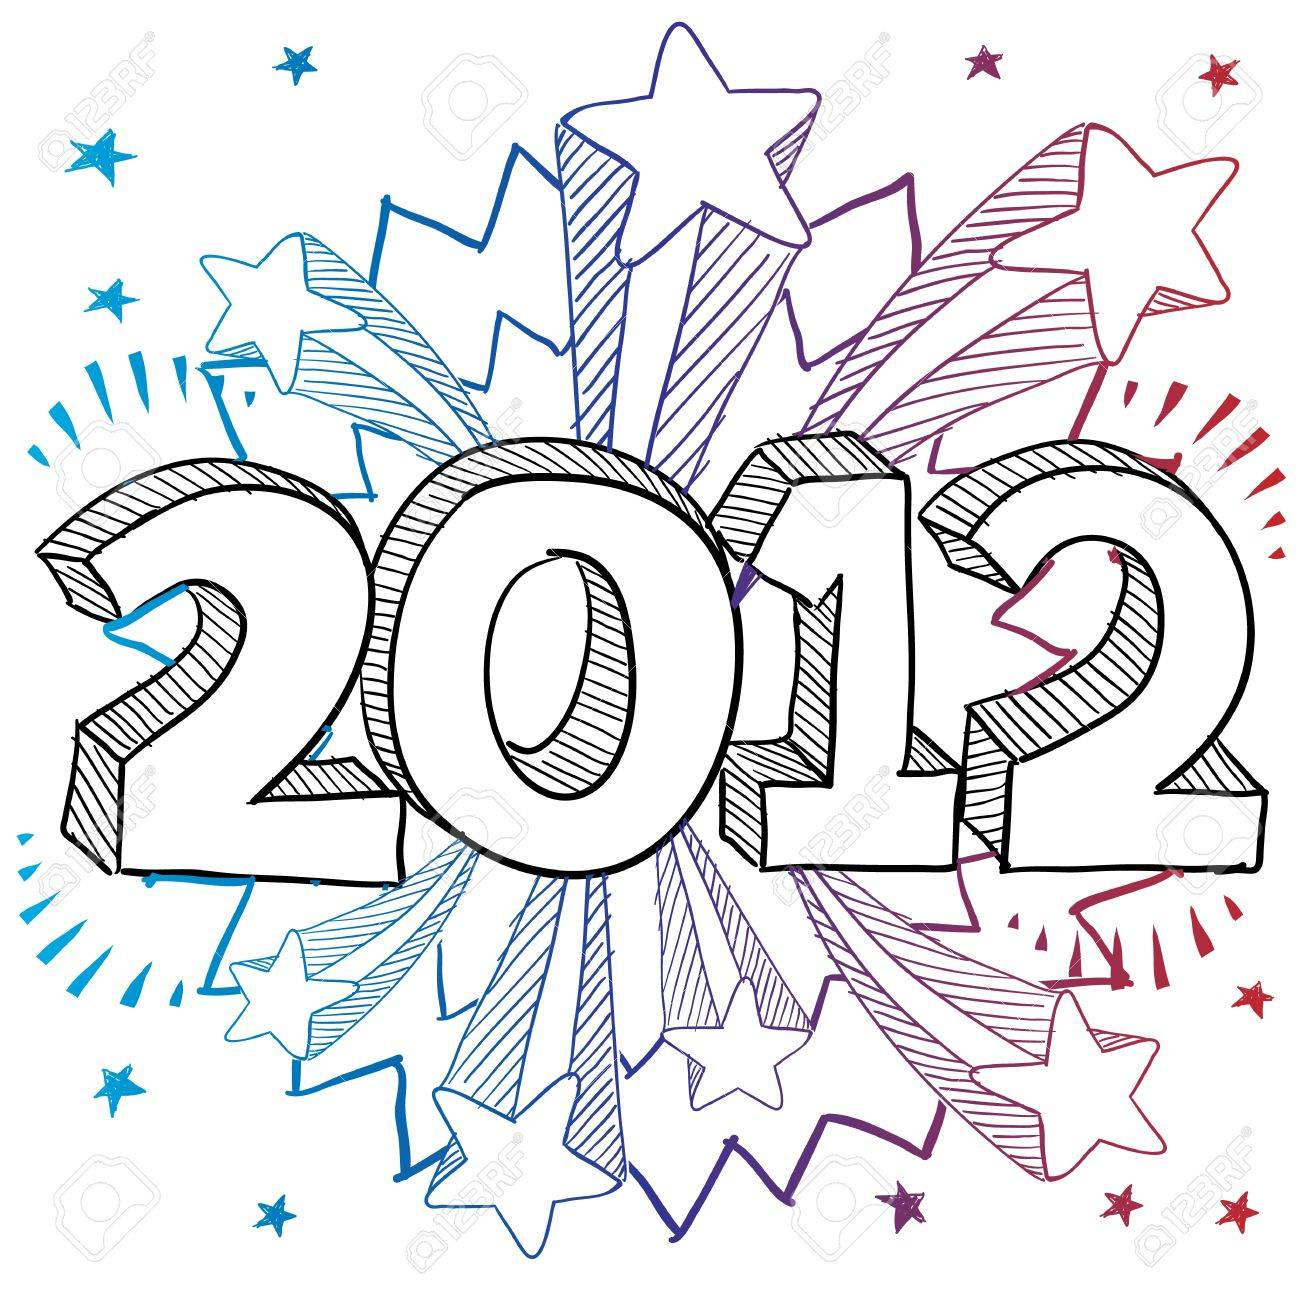 Doodle style 2012 New Year illustration with retro 1970s shooting...